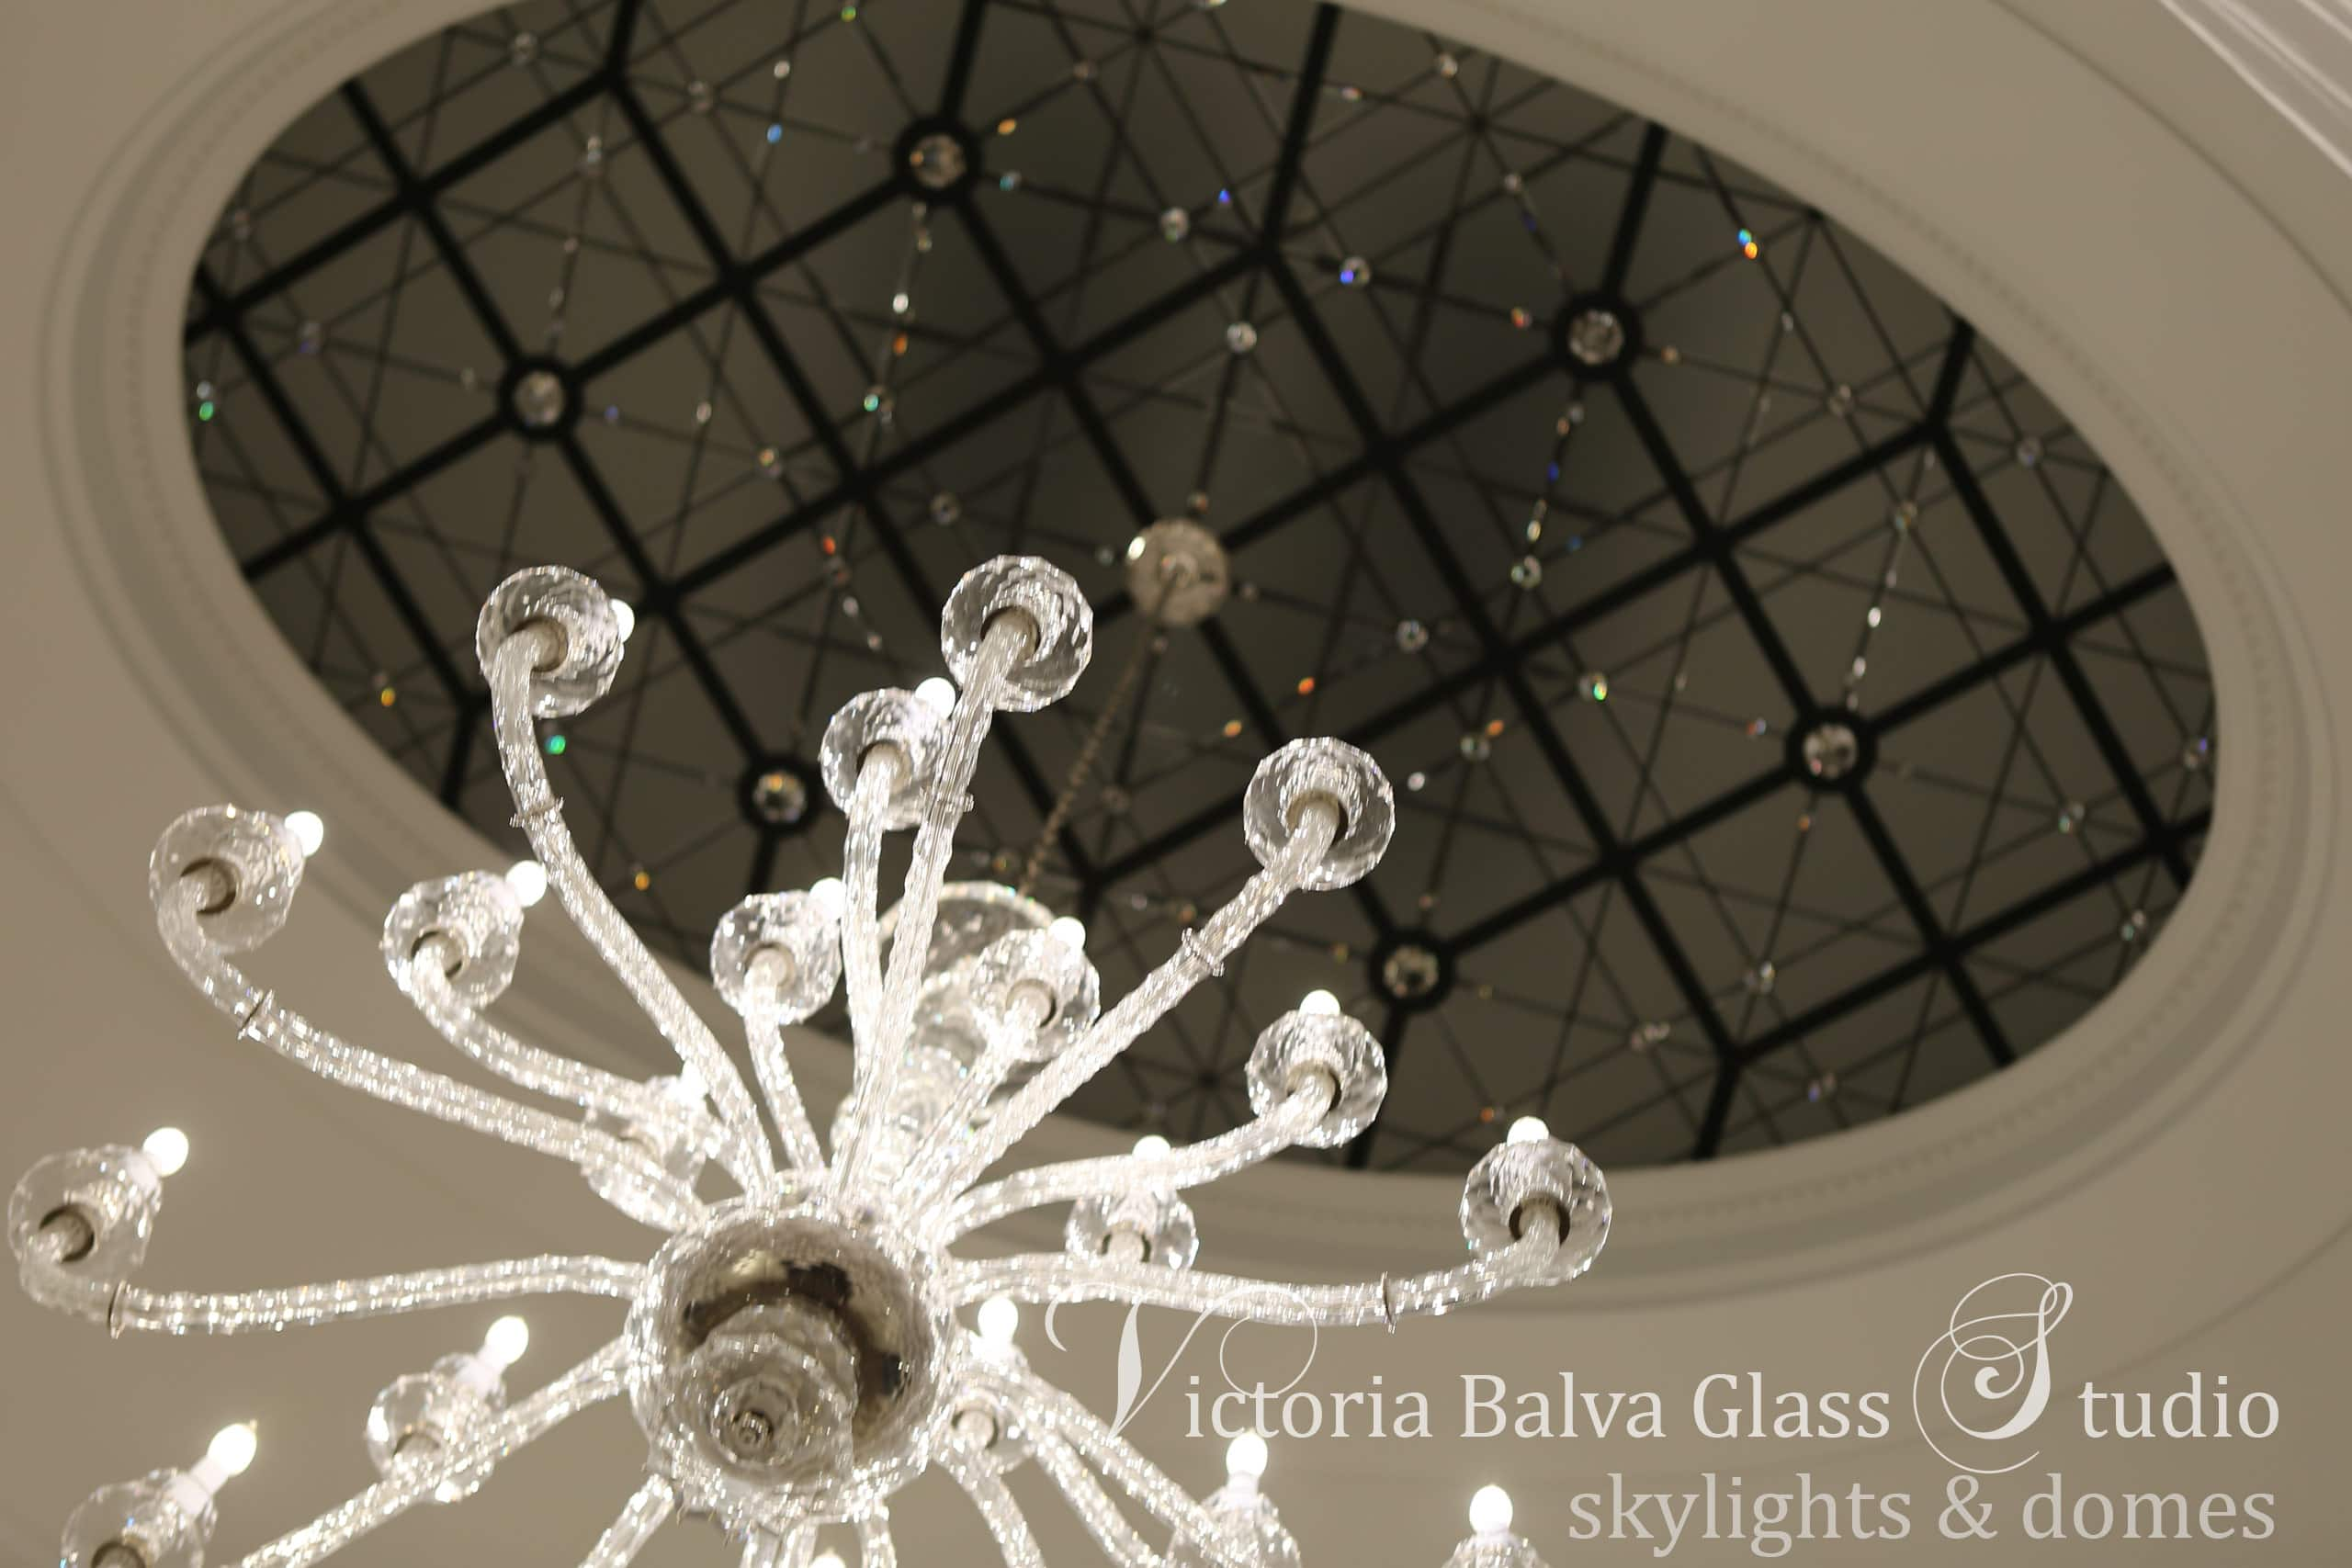 decorative stained glass ceiling at a night time with crystal chandelier in the custom built home